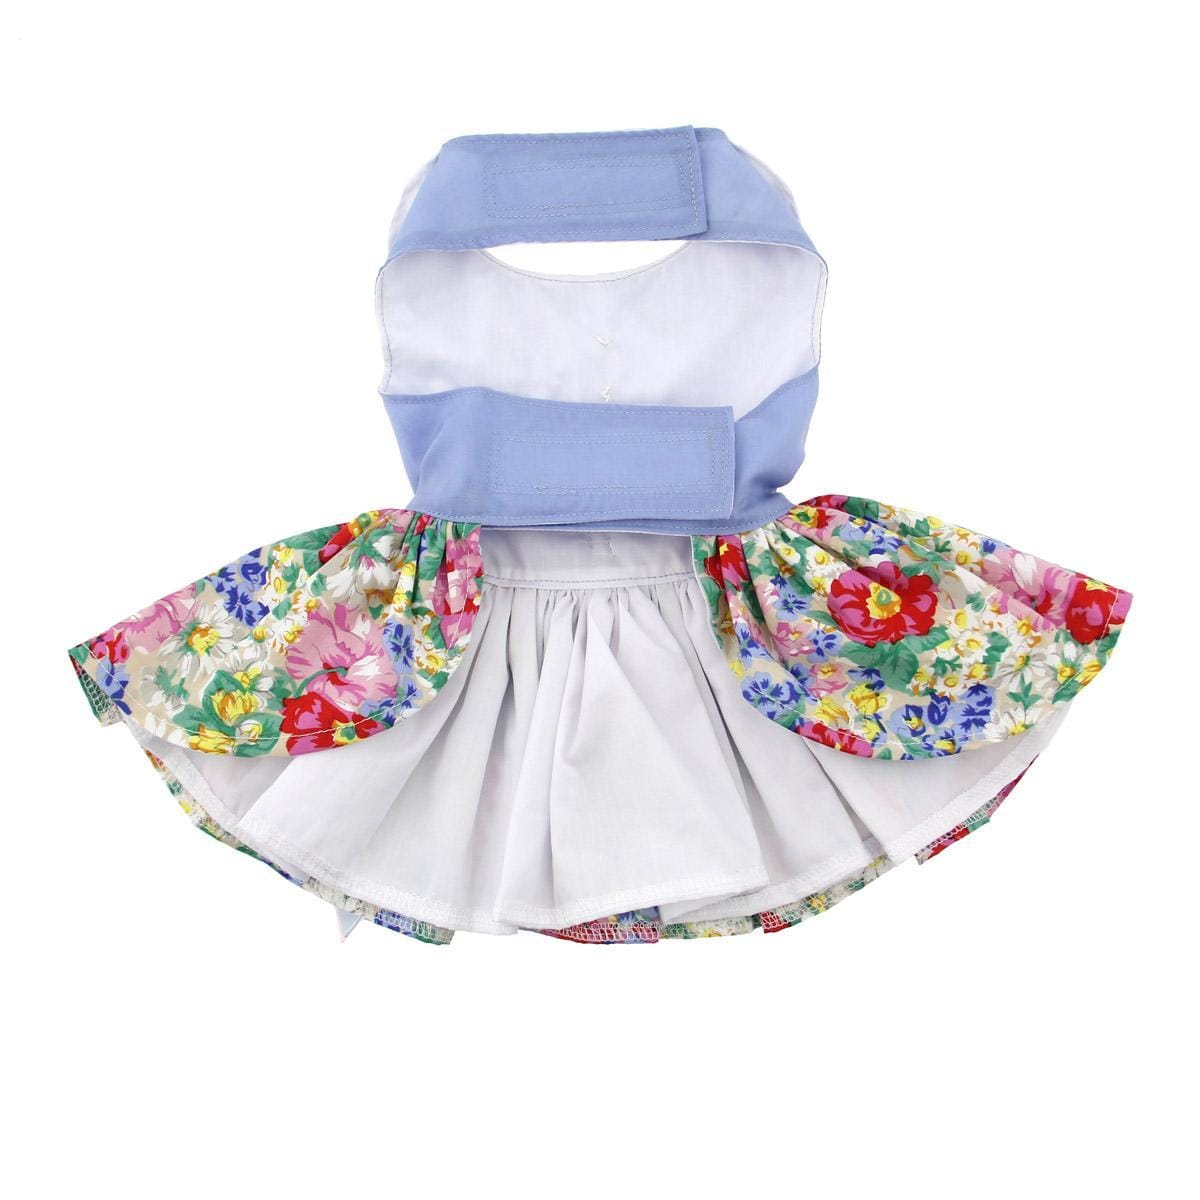 a336493aa8 Blue and White Pastel Pearls Floral Dog Dress - belly. Blue and White  Pastel Pearls Floral Dog Dress - belly